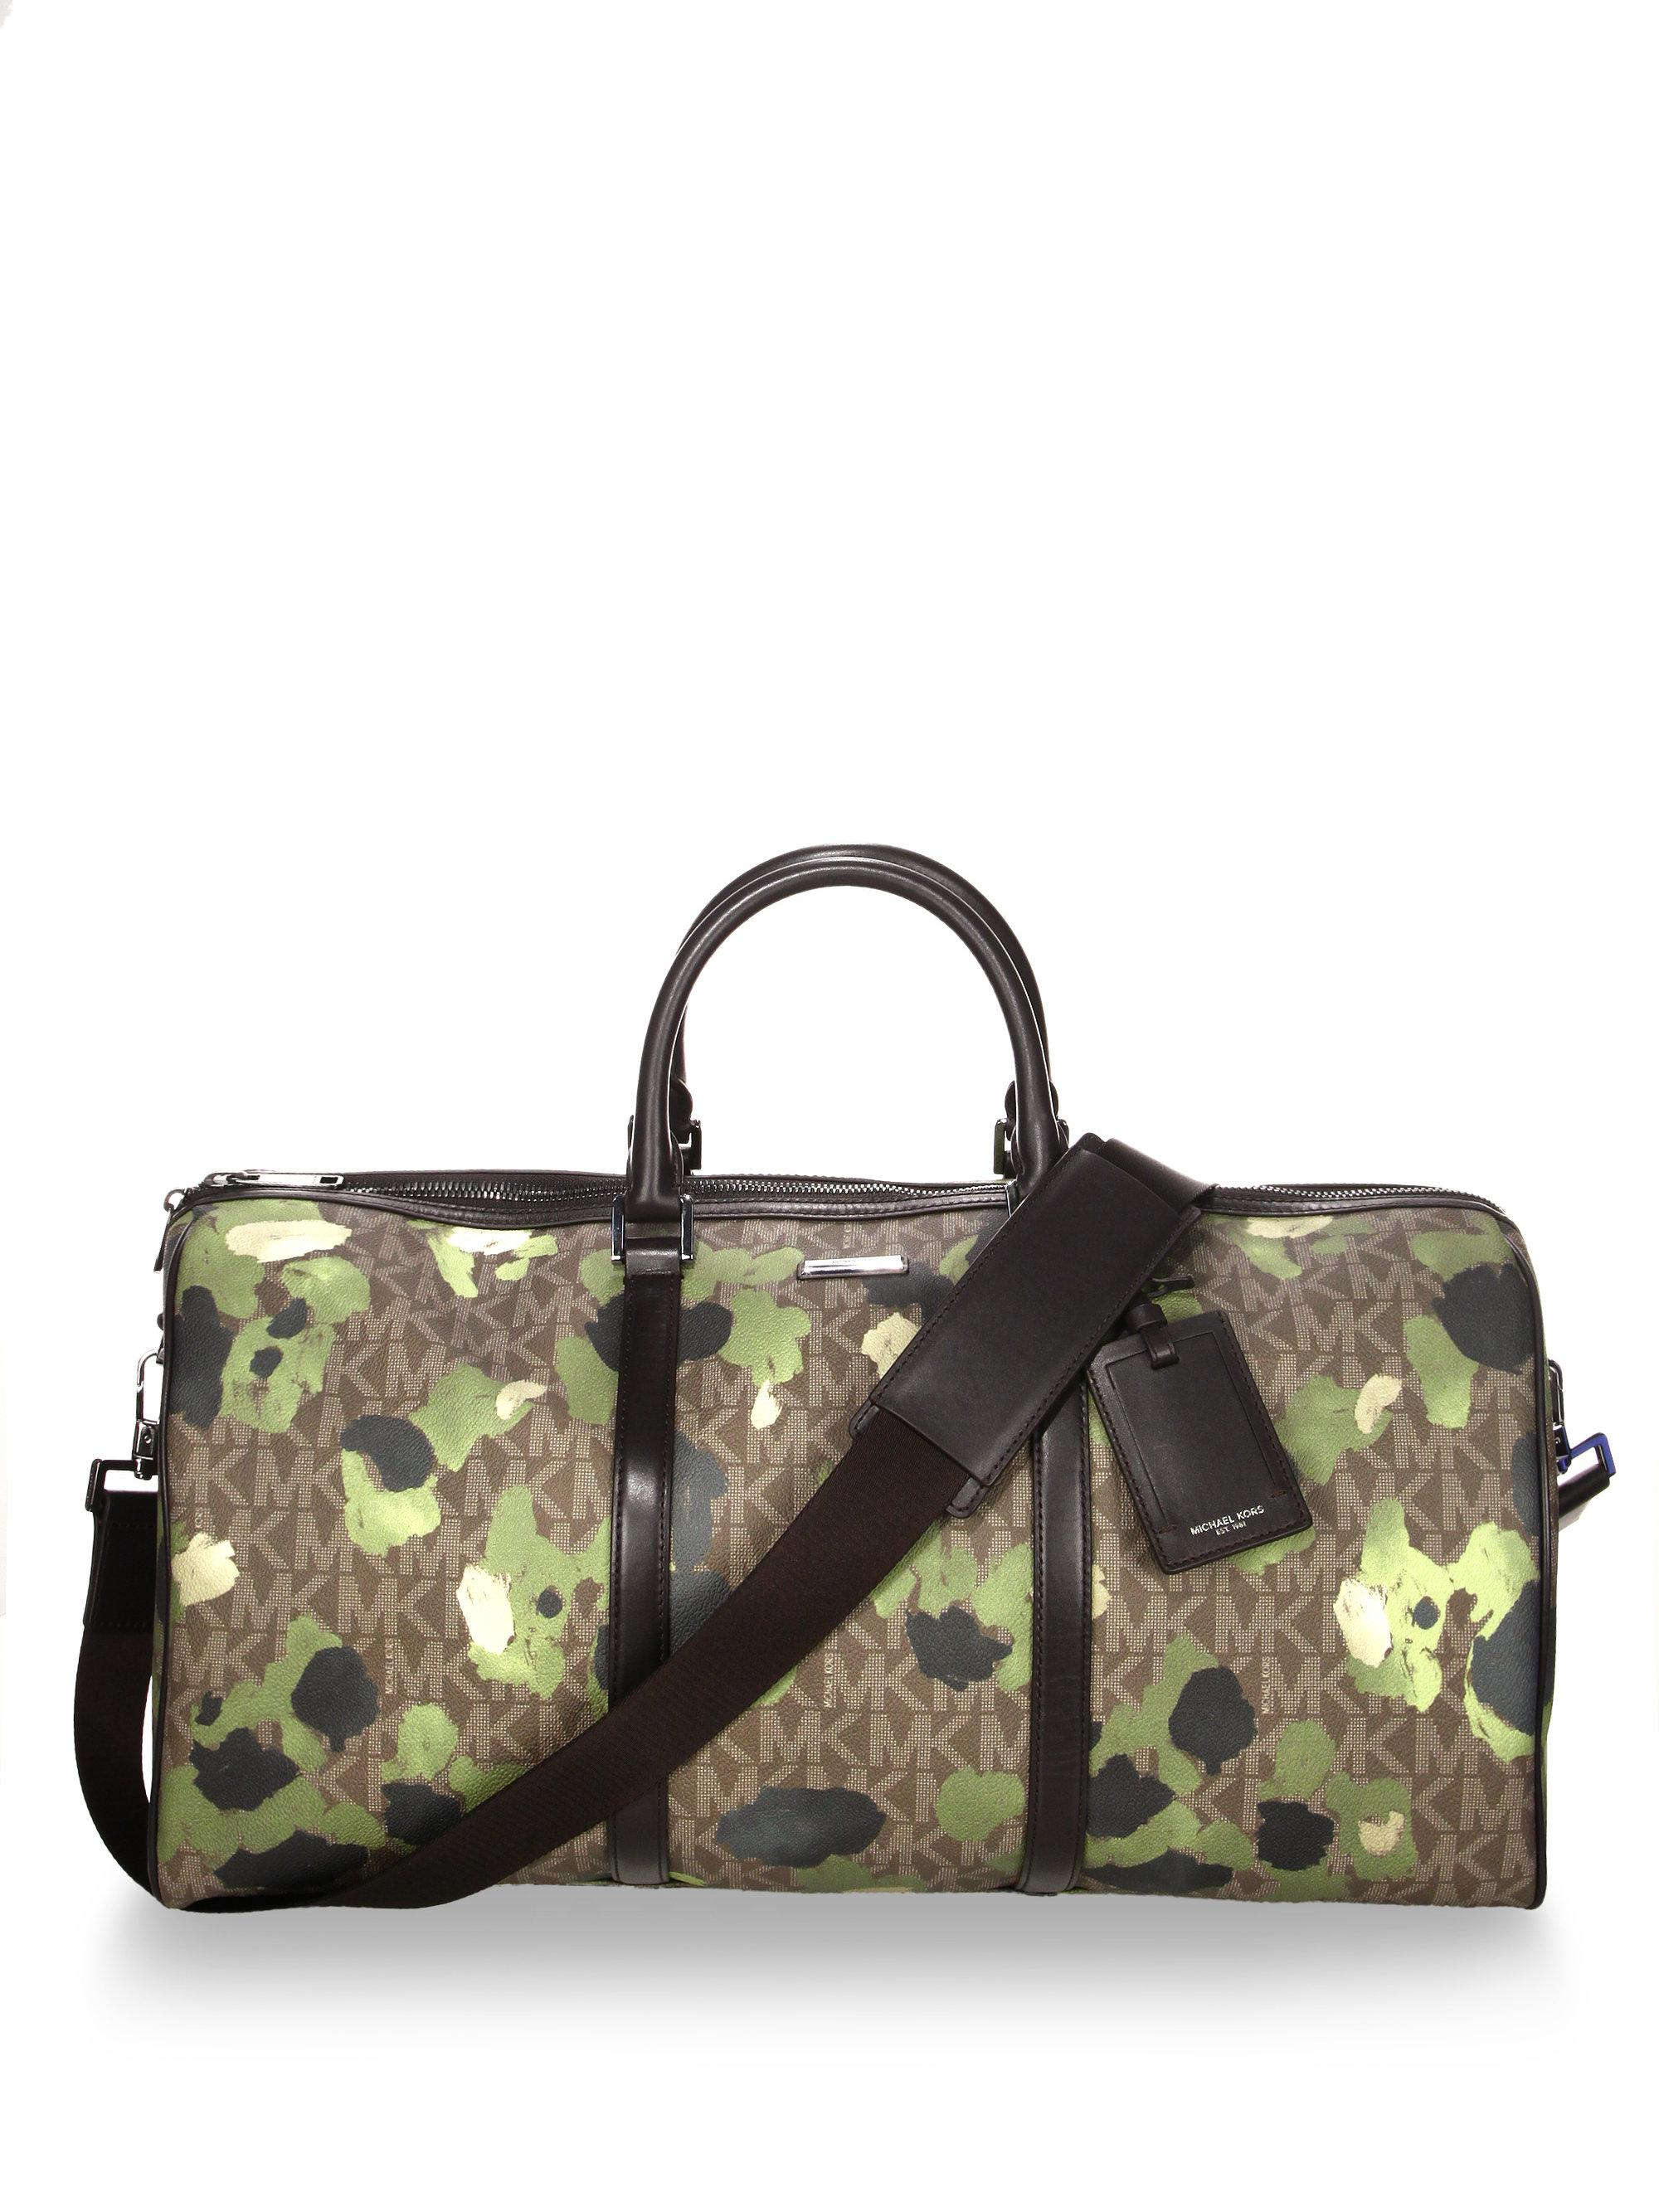 398ae758ce28 Michael Kors Camouflage Print Large Duffle Bag for Men - Lyst